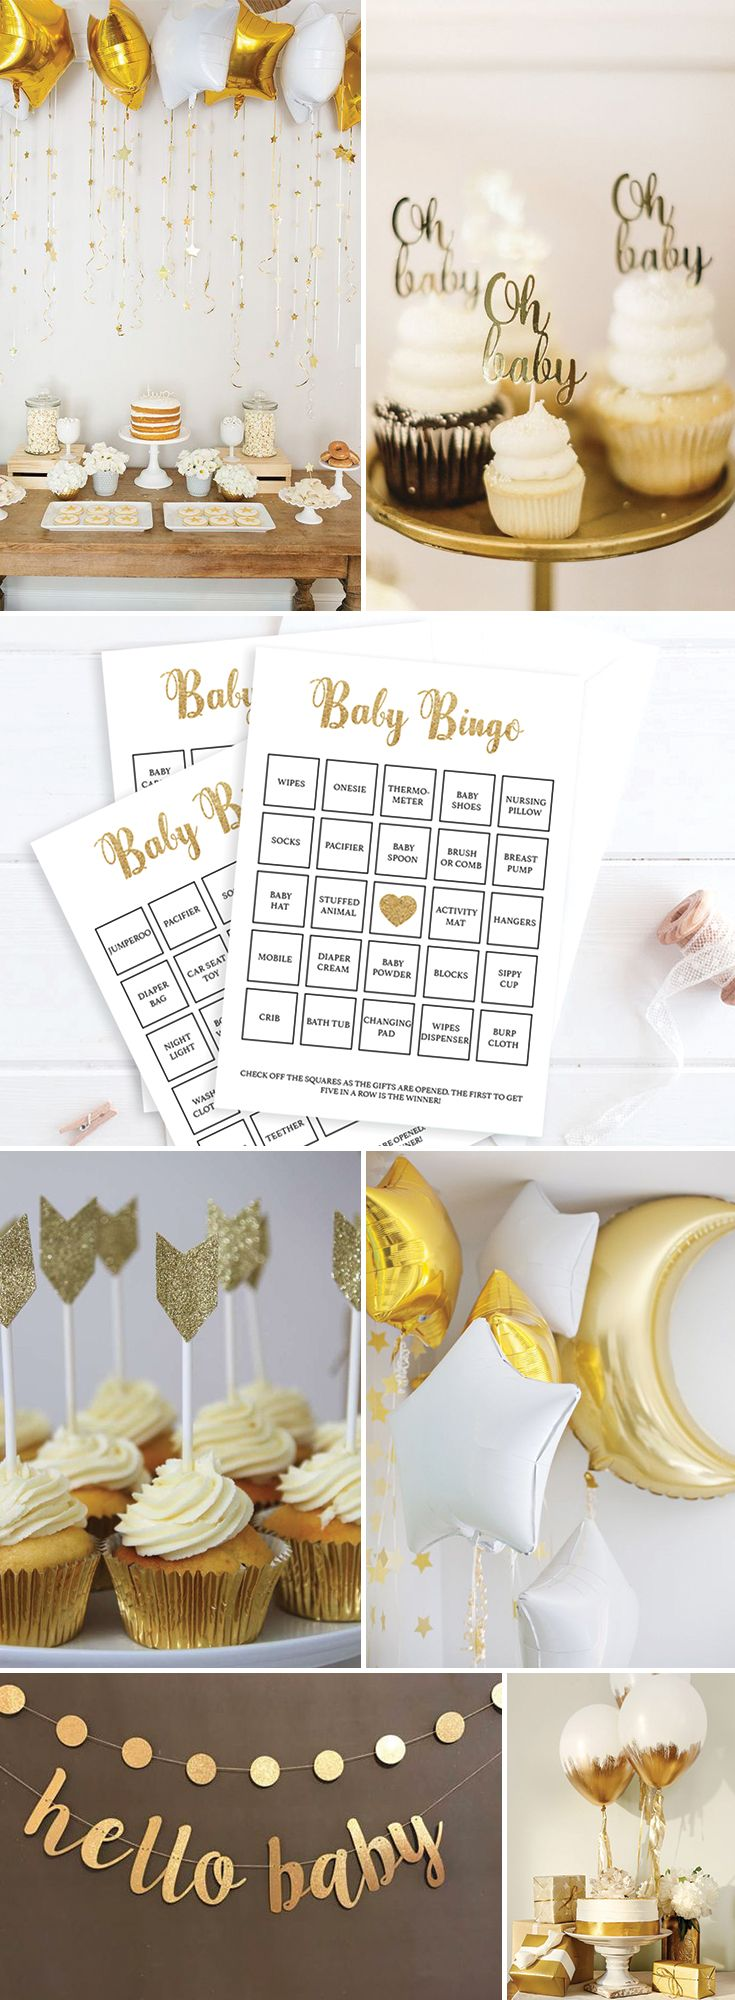 Free Printable Baby Shower Games - Moms & Munchkins